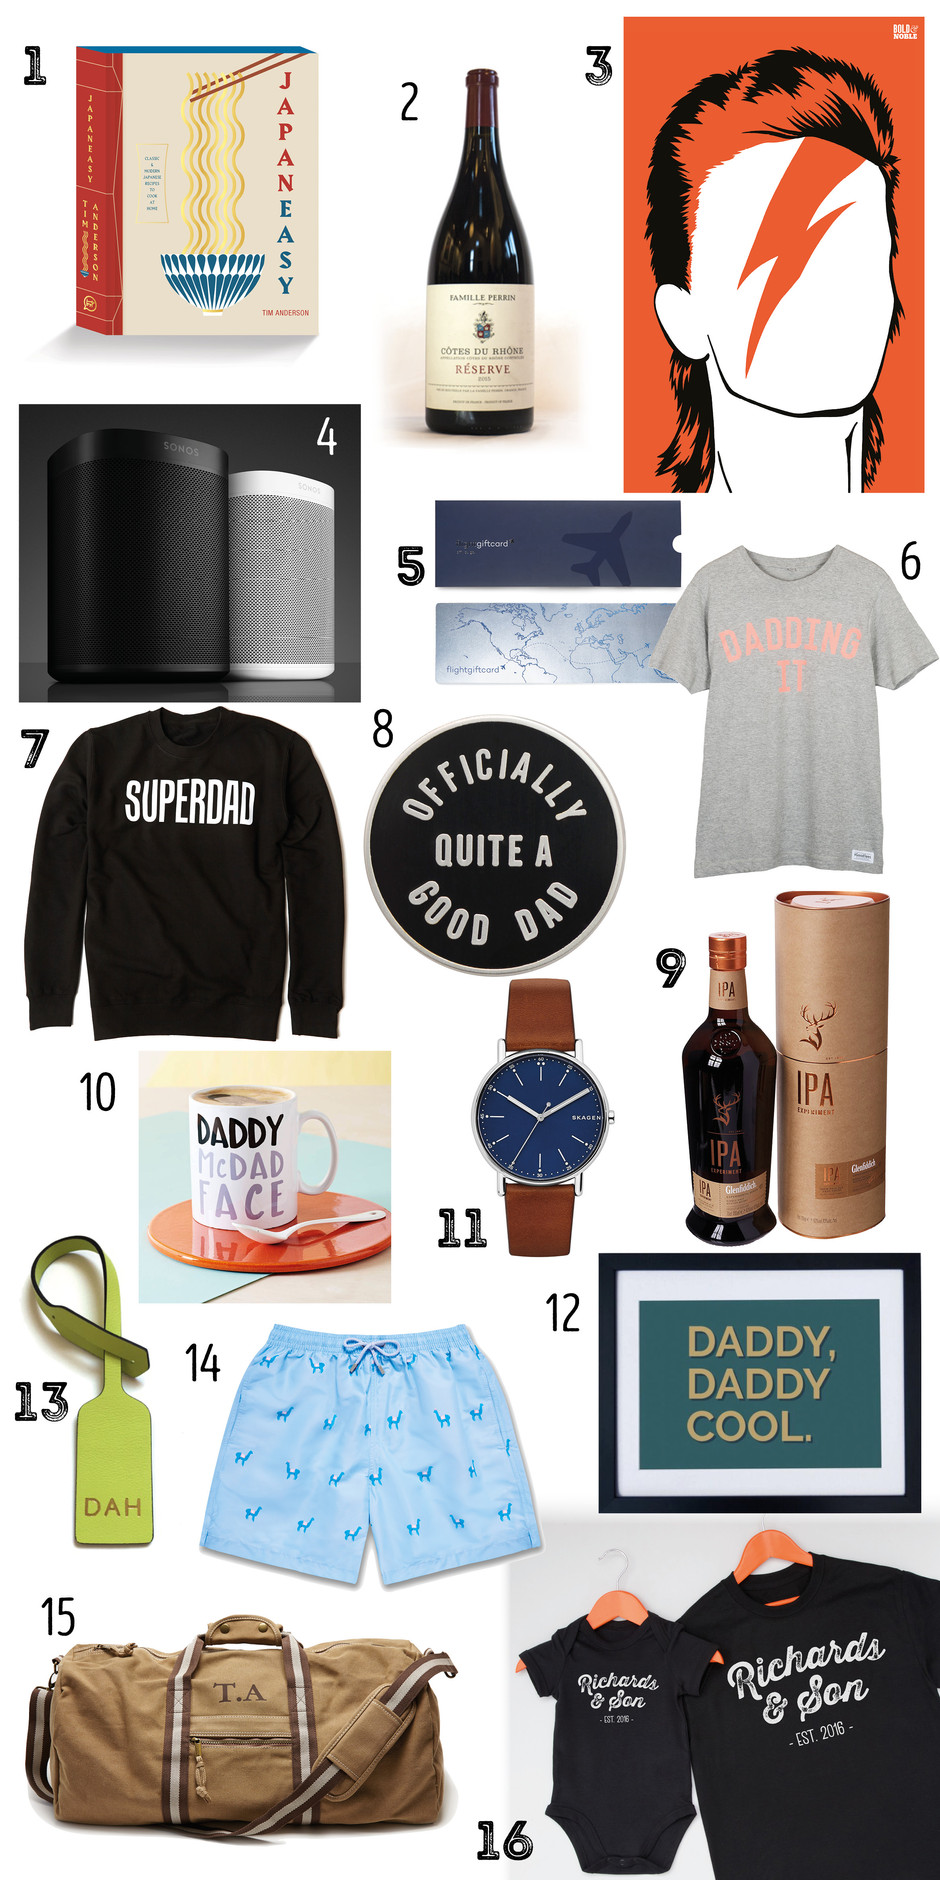 FATHER'S DAY GIFT GUIDE: Let's Hear It For The Boys!